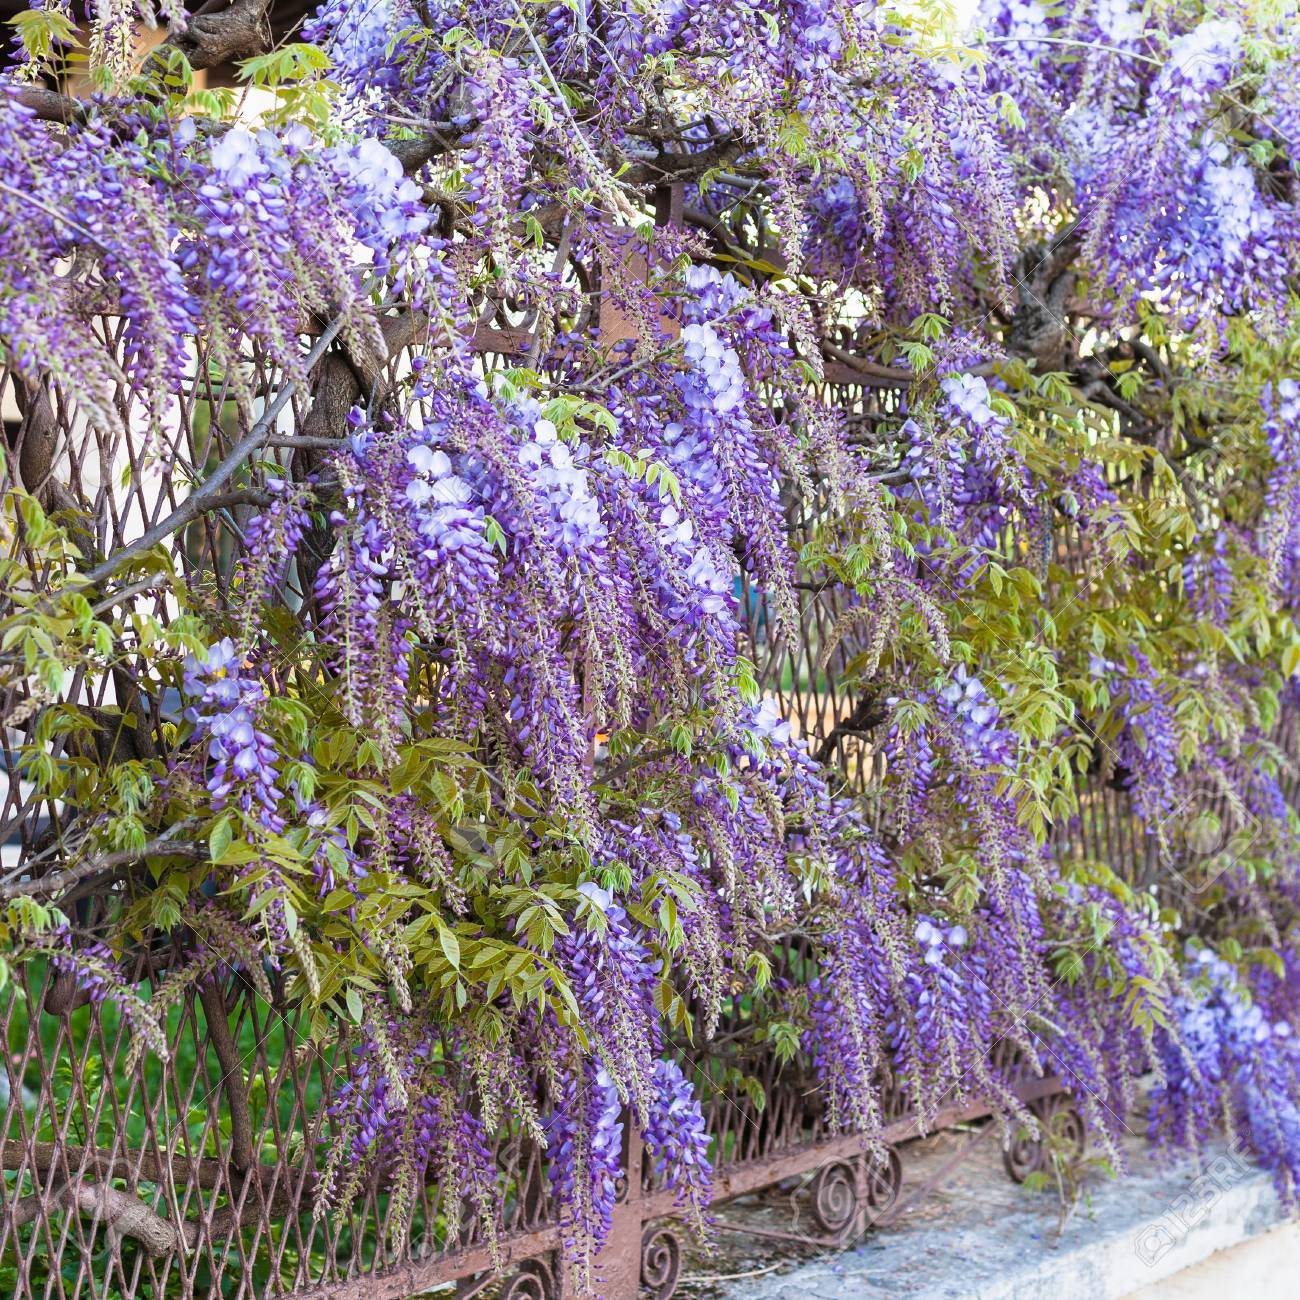 Travel To Italy Blue Flowers Wisteria Plant In Urban Garden